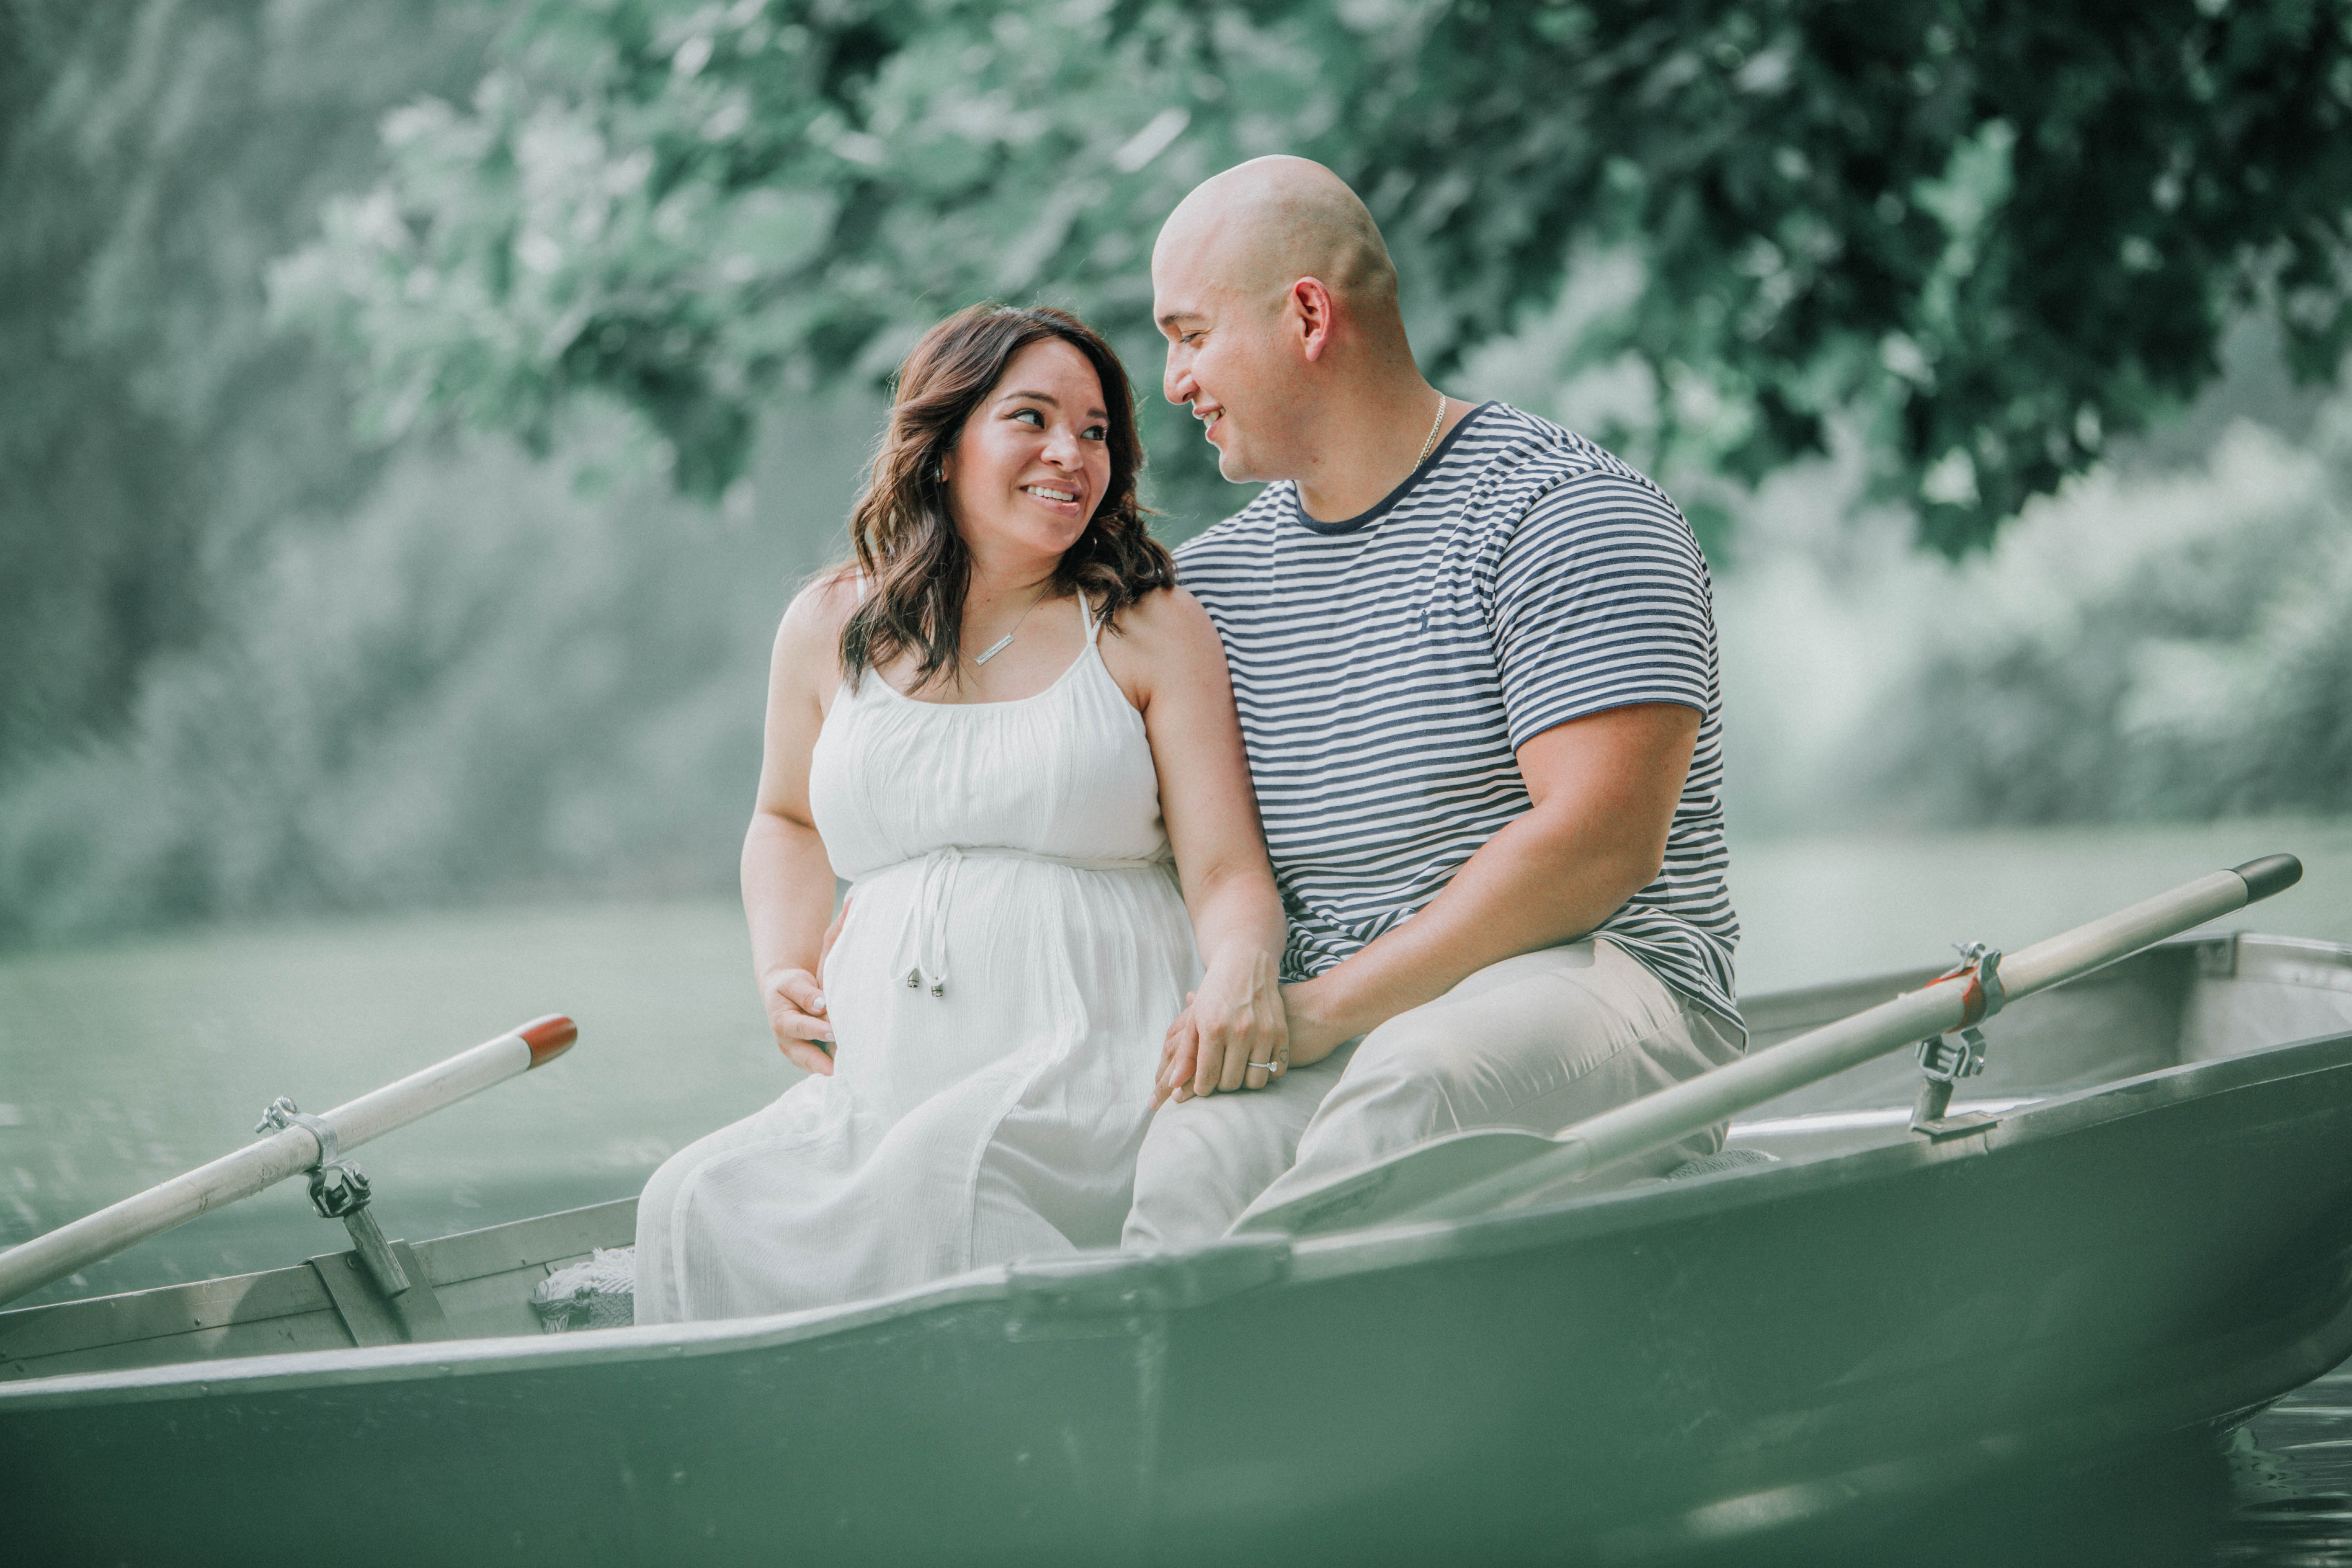 summer Central Park Rowboat Maternity Shoot